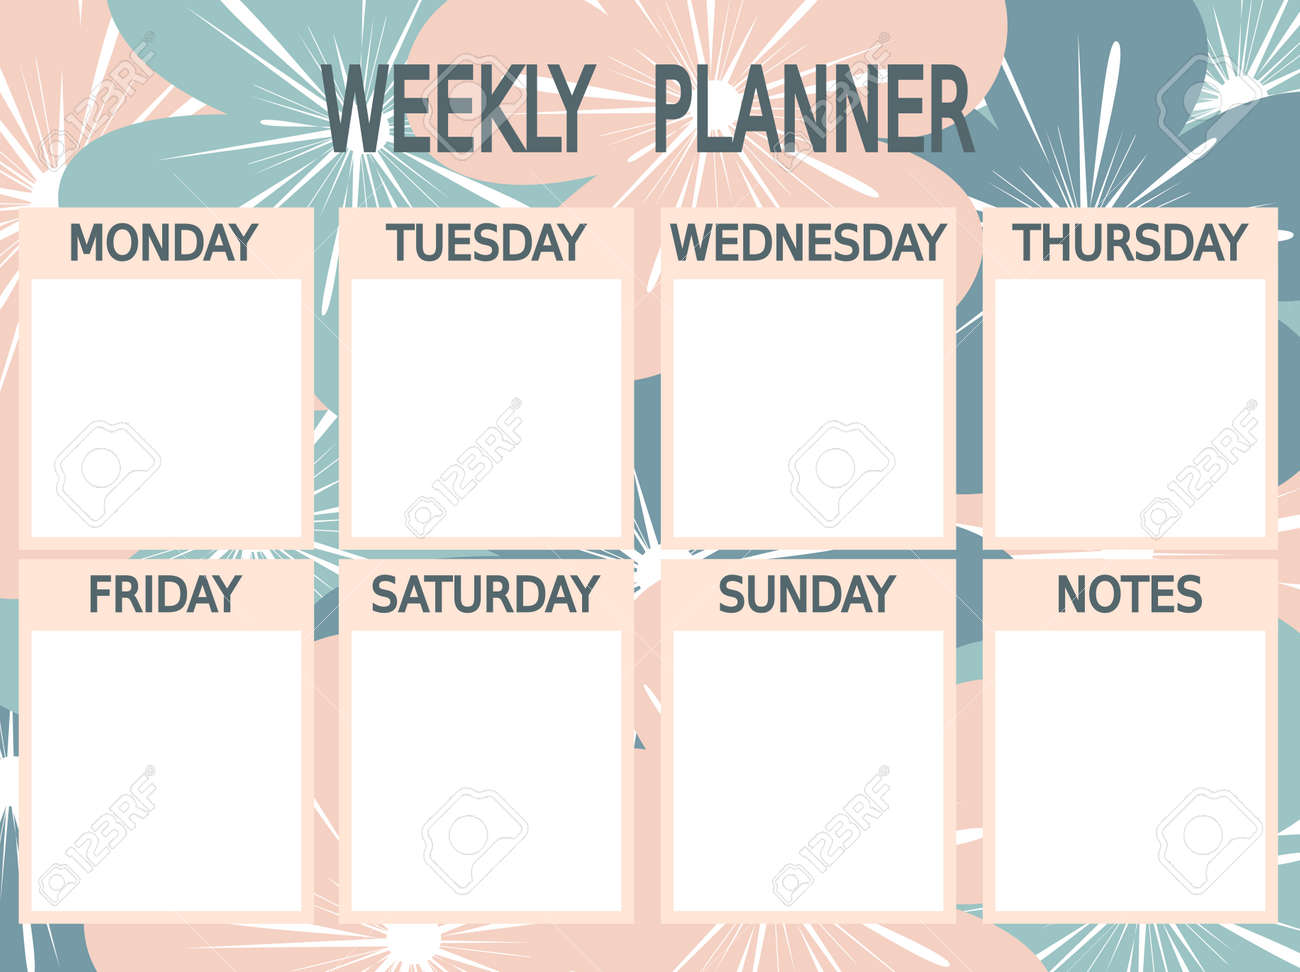 image regarding Cute Weekly Planners known as lovable blue printable weekly planner vector purple with bouquets